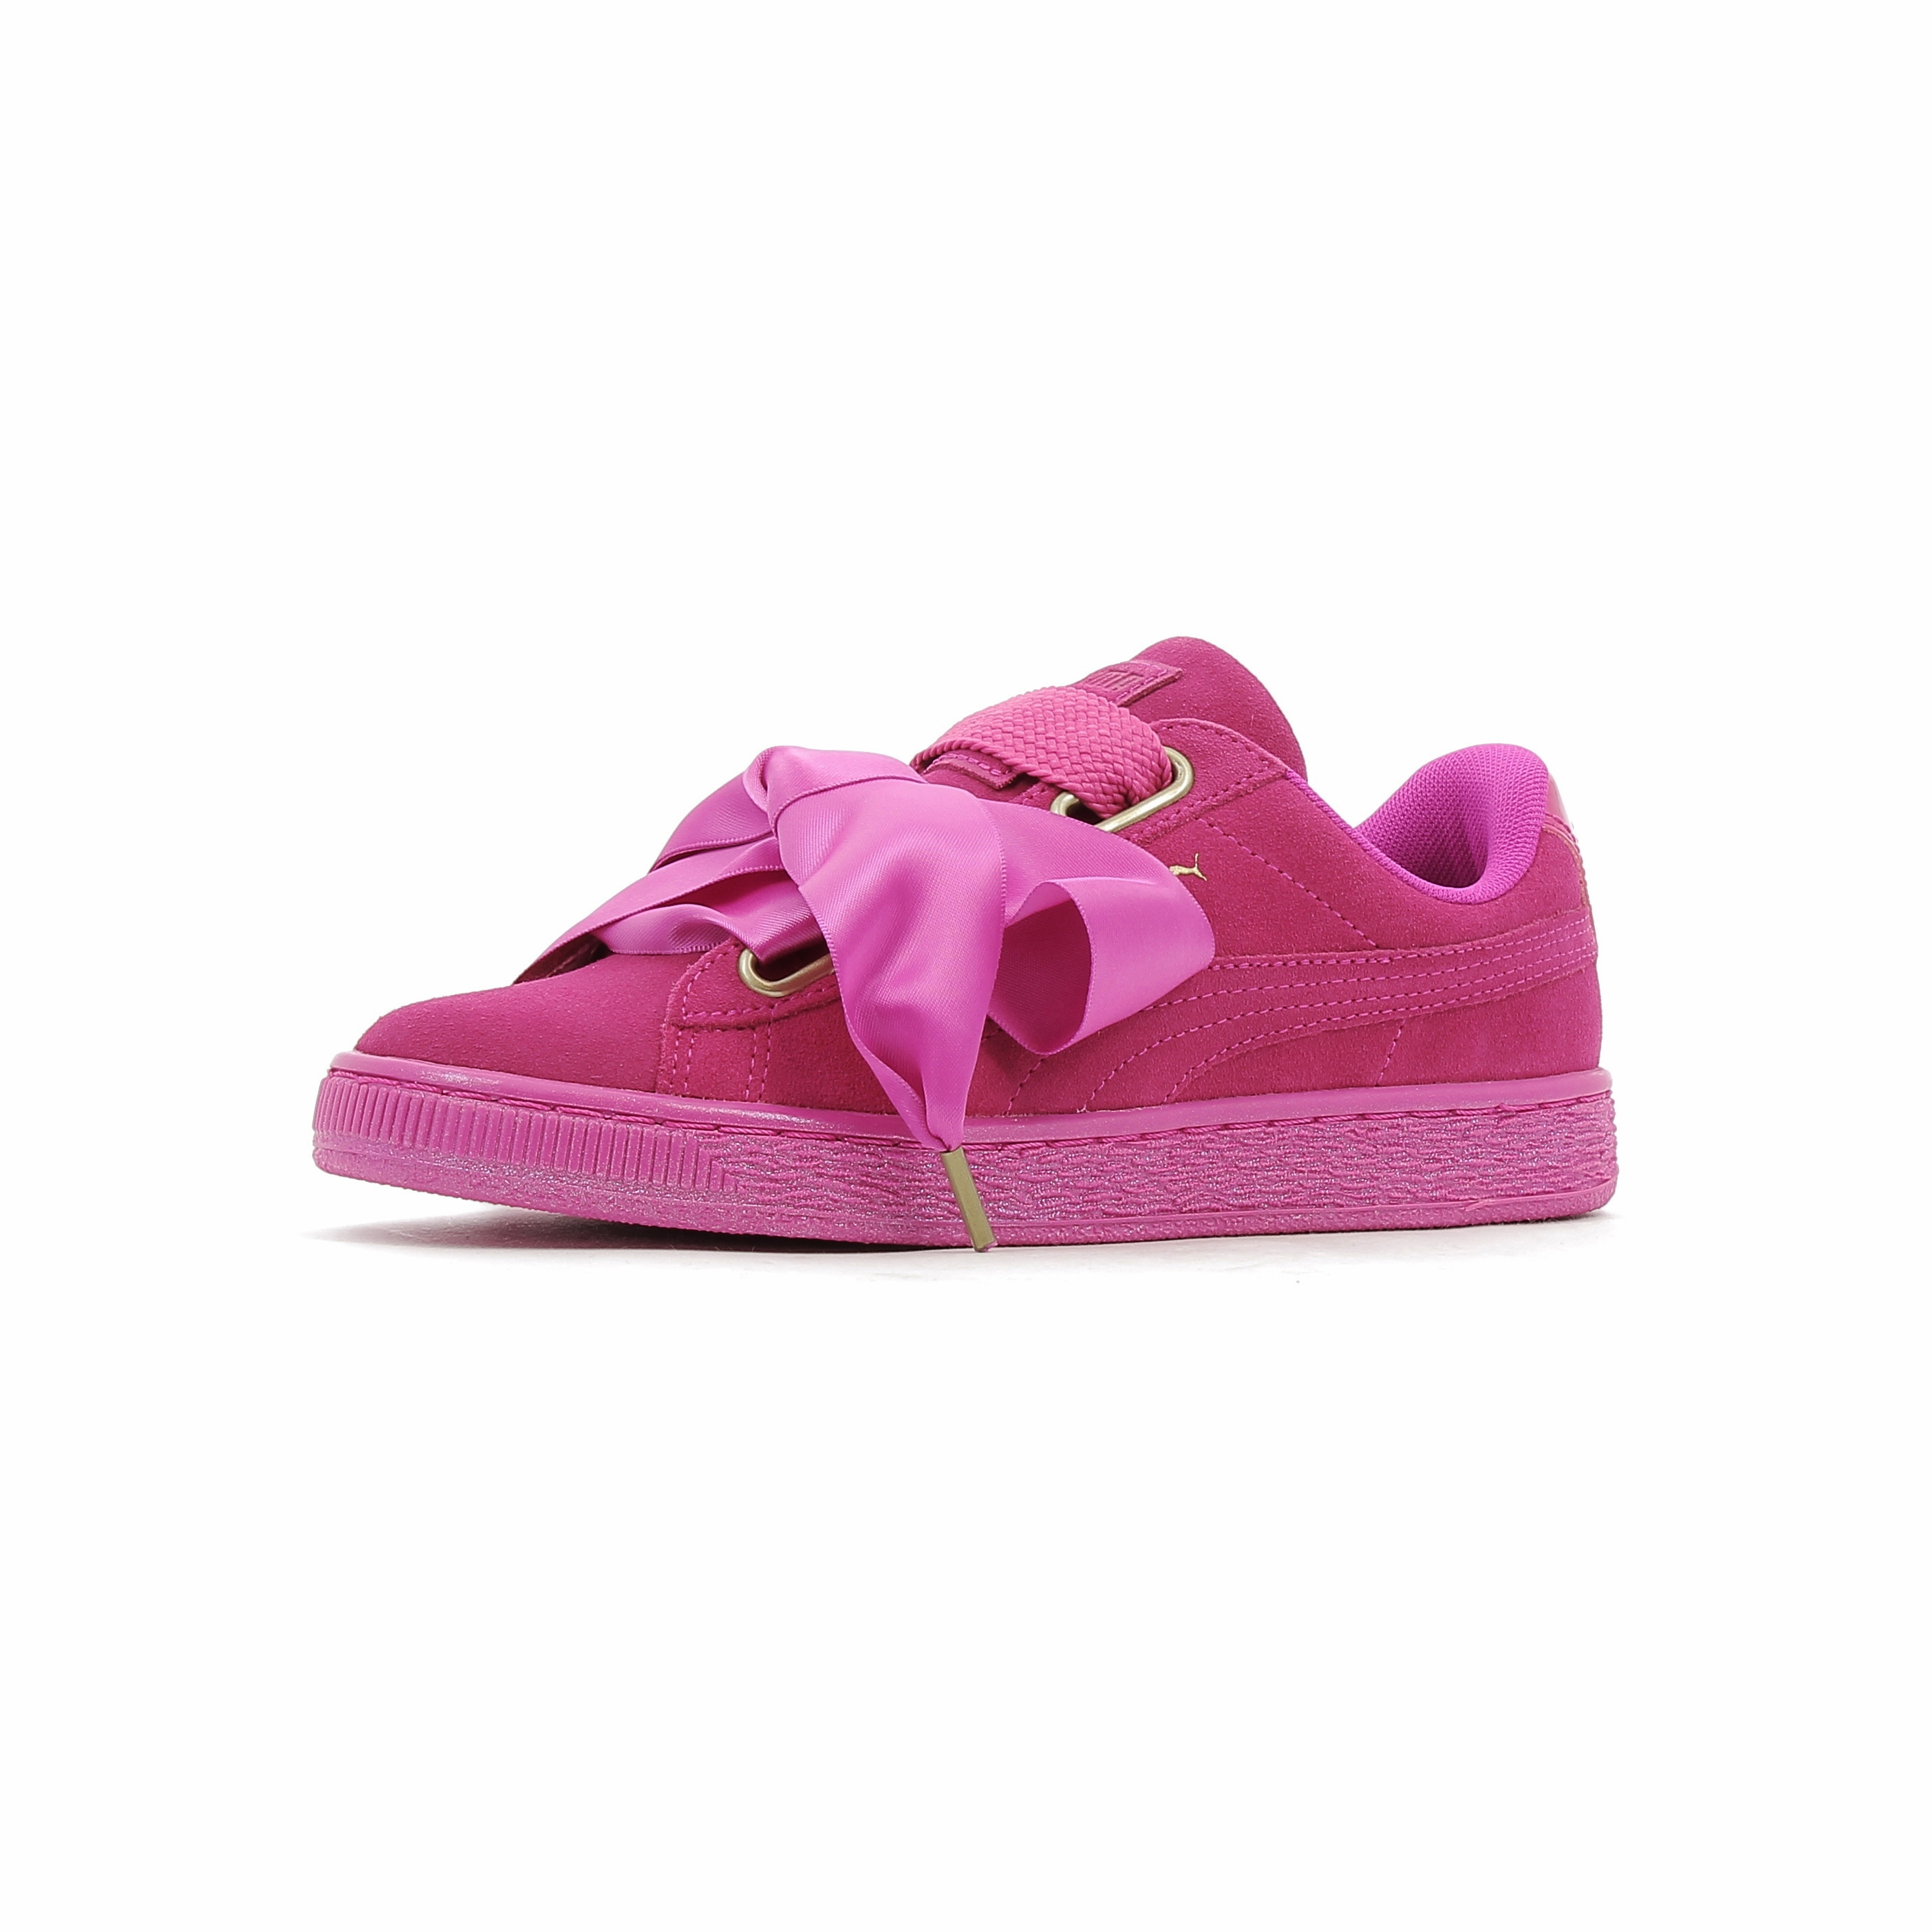 new style 44fed 2b1f8 Baskets basses Puma Suede Heart Satin